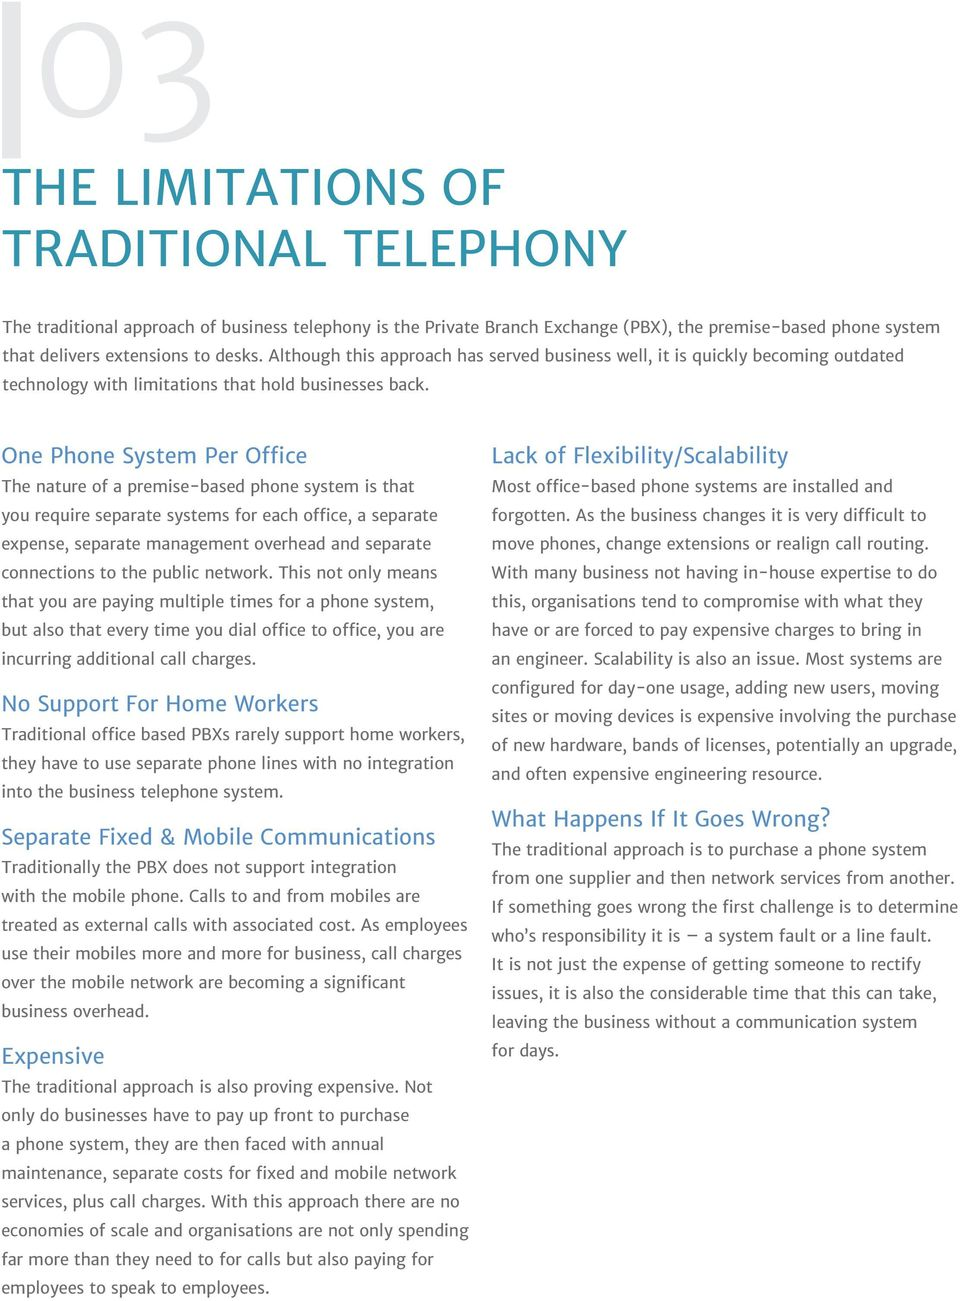 One Phone System Per Office The nature of a premise-based phone system is that you require separate systems for each office, a separate expense, separate management overhead and separate connections